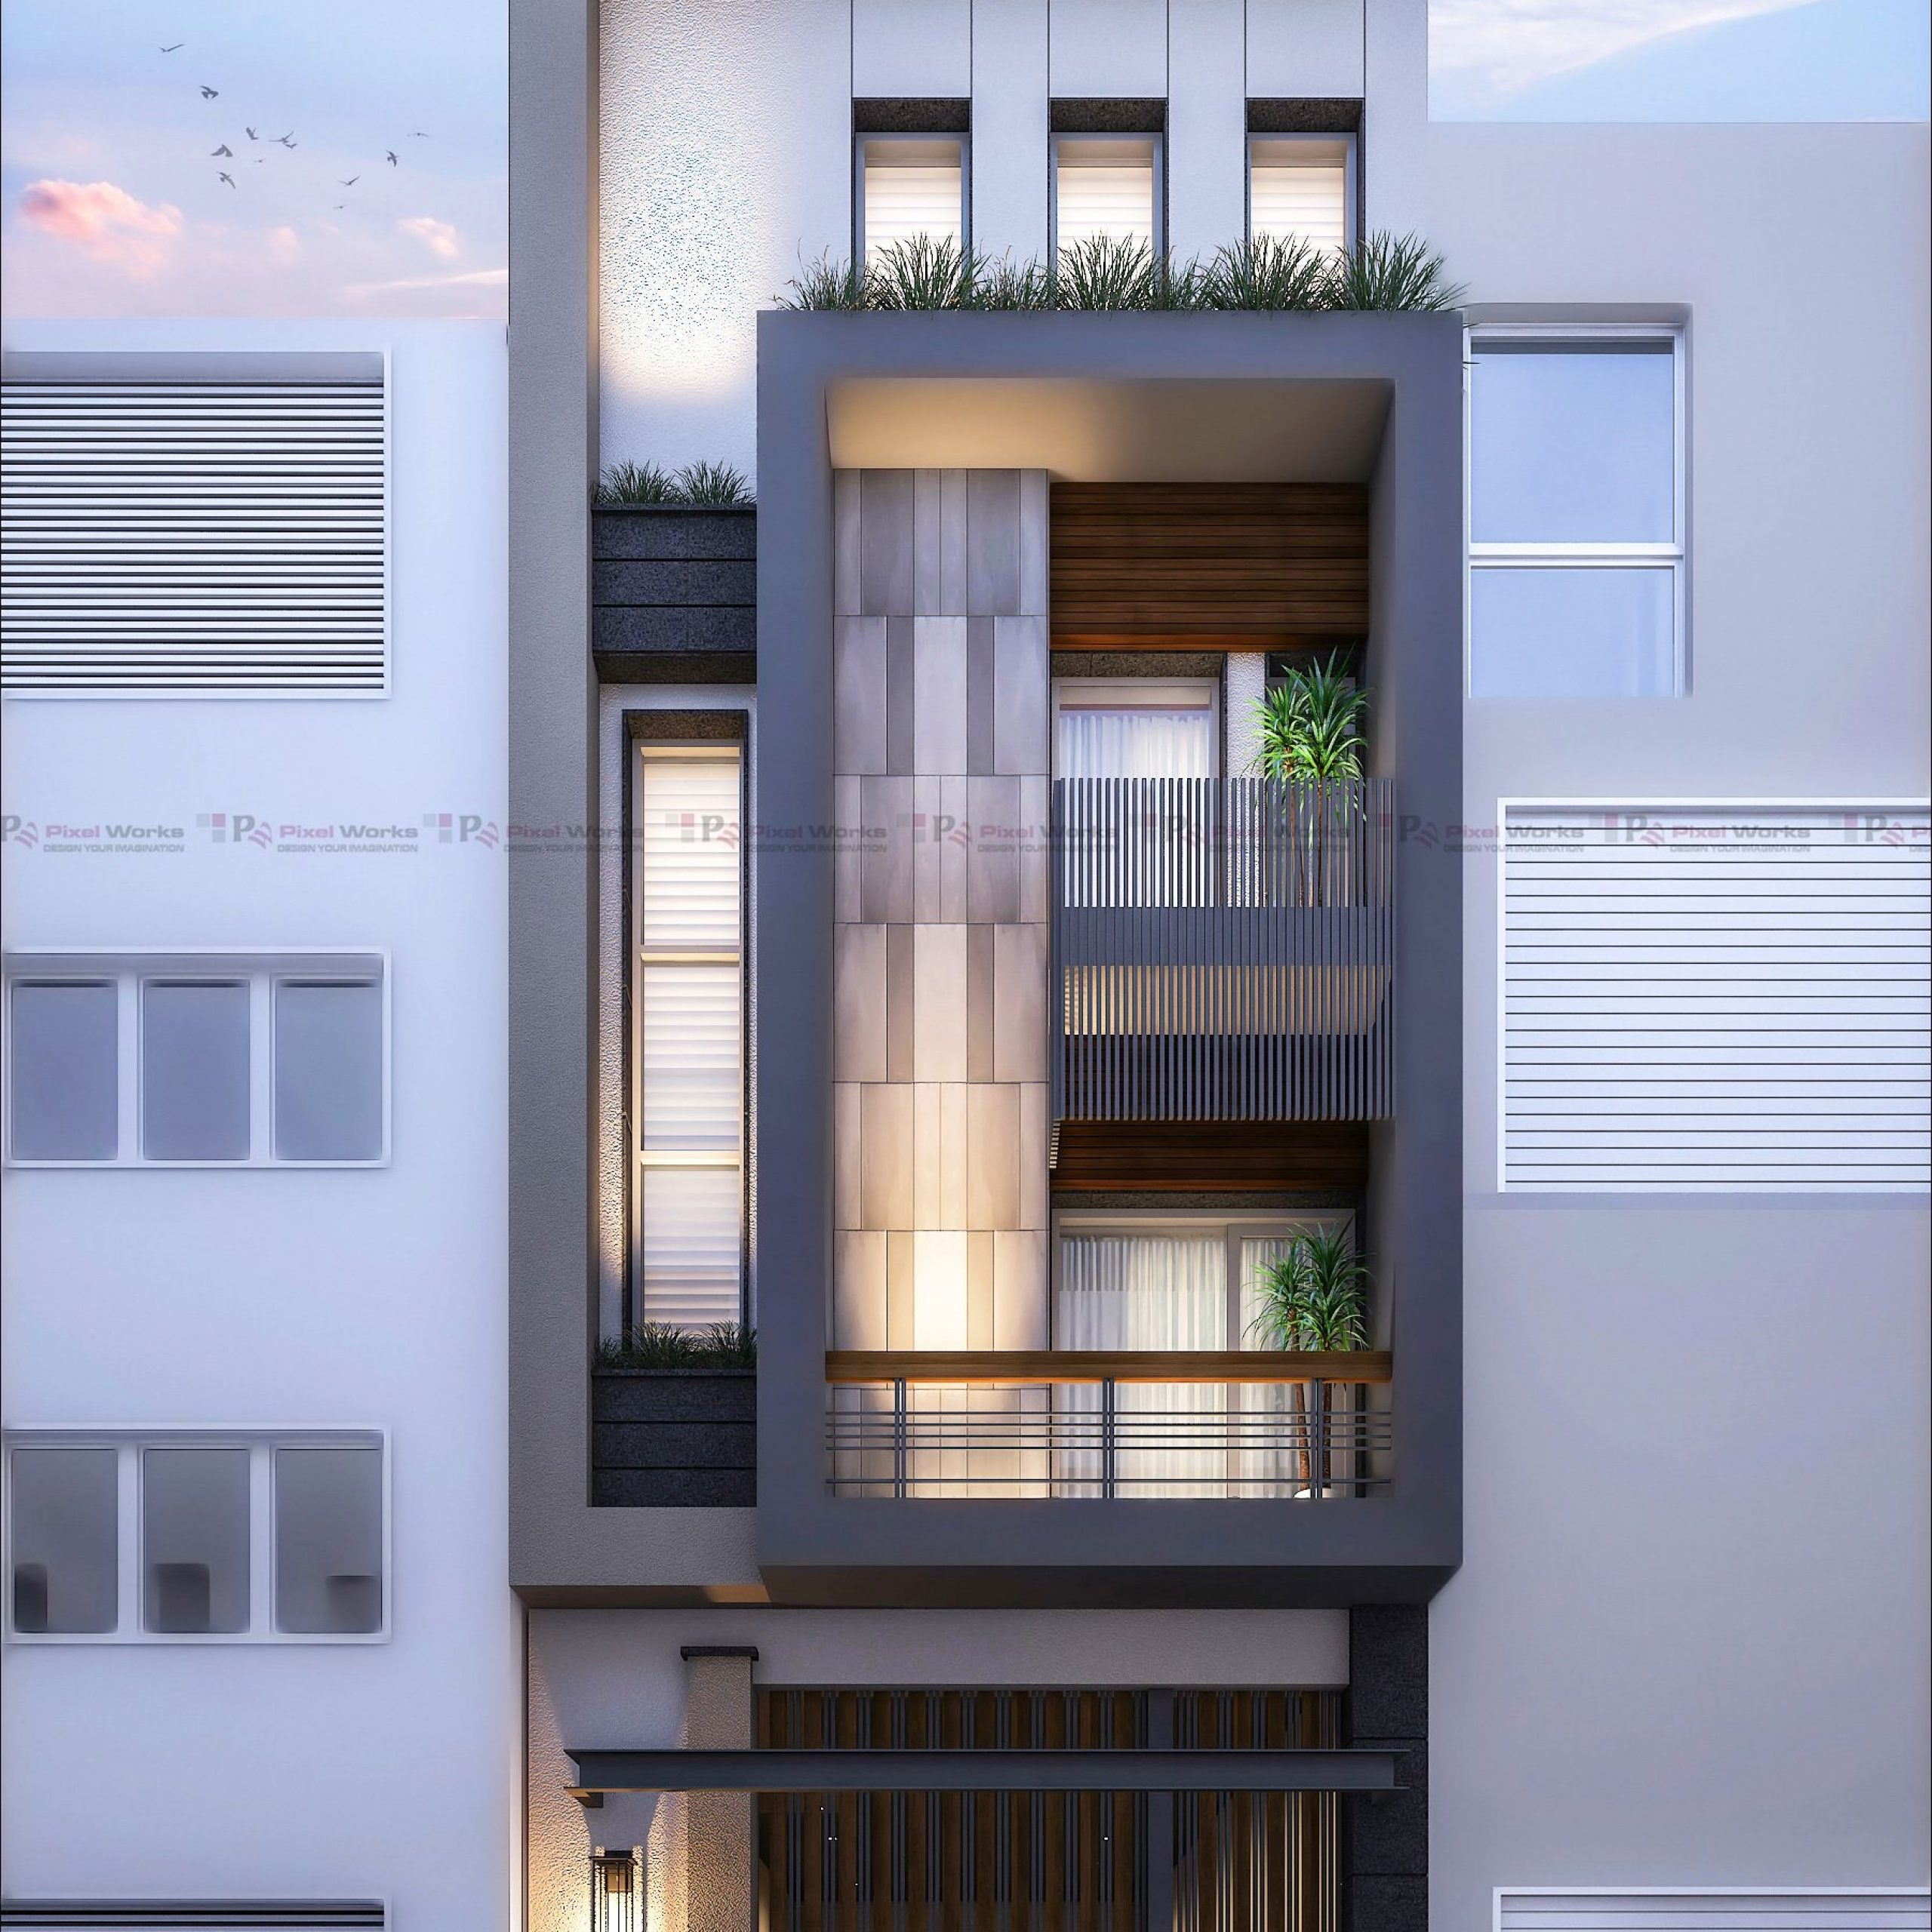 adf4cd4e0c167f8f9fbf17cc526fd80c on Modern House Designs Pictures Gallery id=1005765